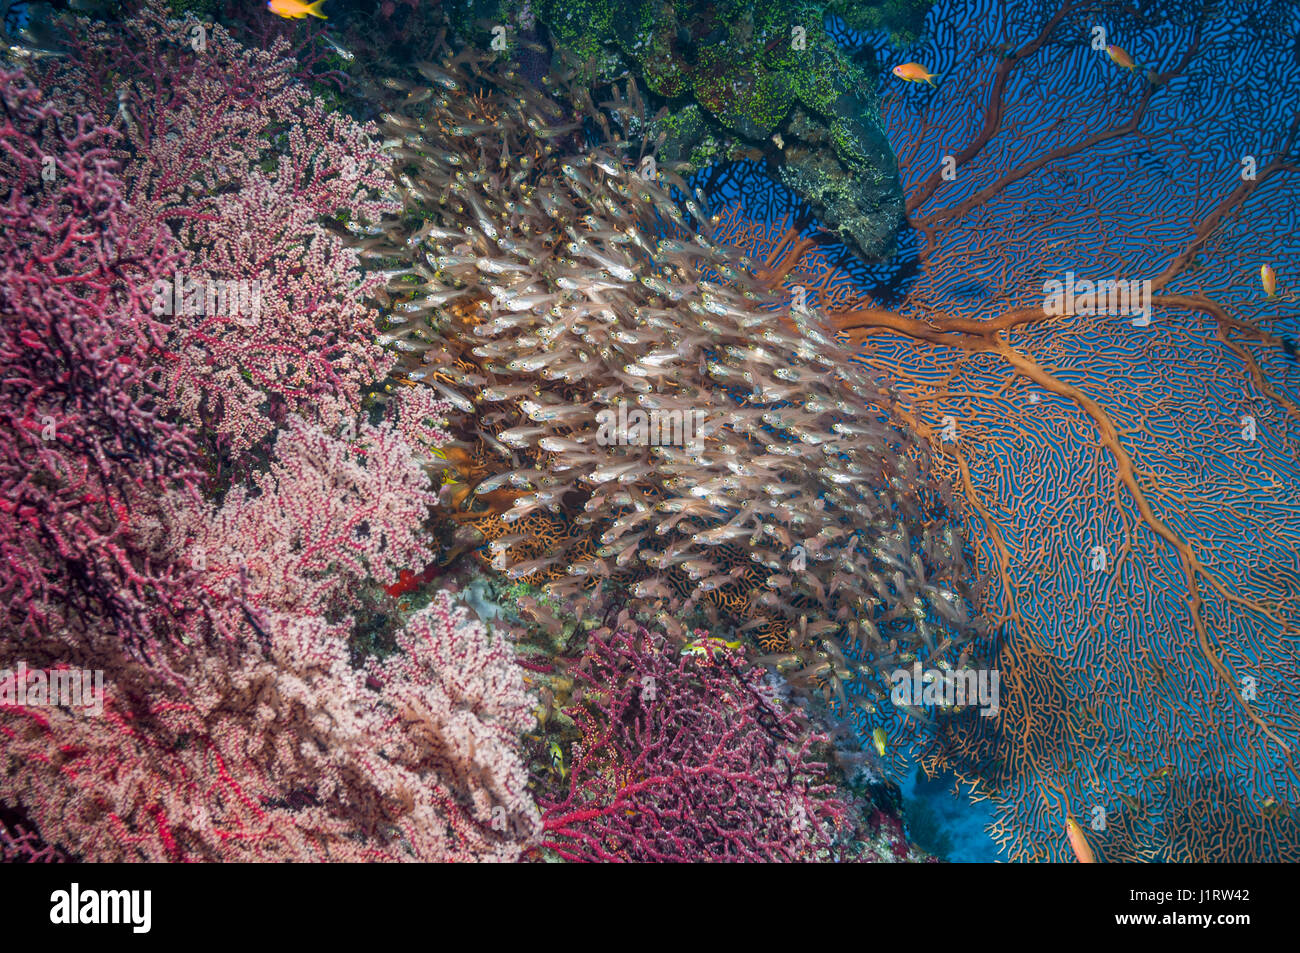 Pygmy sweepers [Parapriacanthus ransonetti] with gorgonian corals.  Similan Islands, Andaman Sea, Thailand. - Stock Image